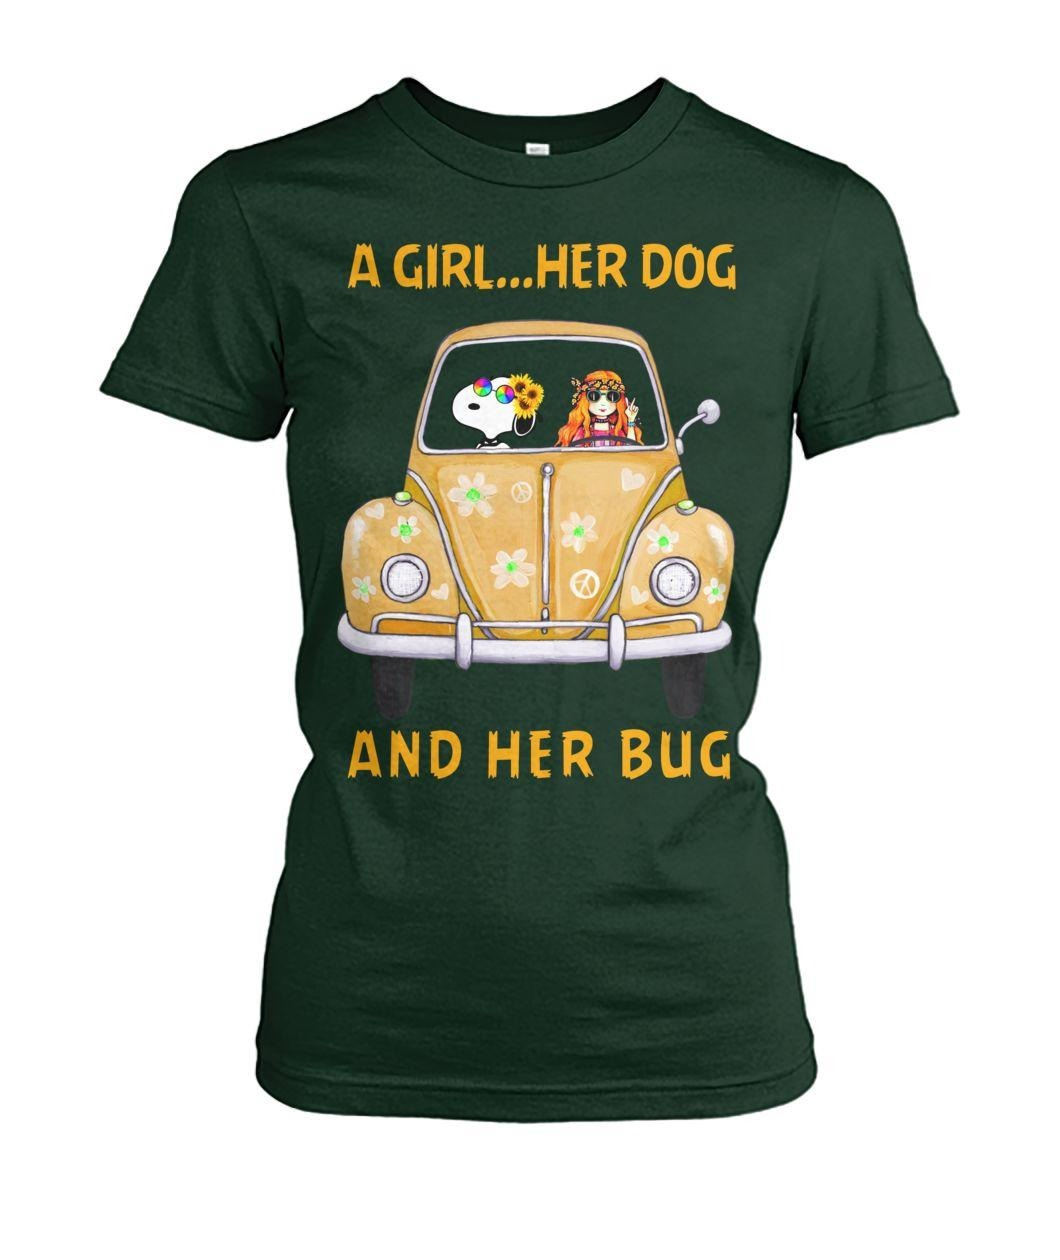 Snoopy a girl her dog and her bug Ladies Tee